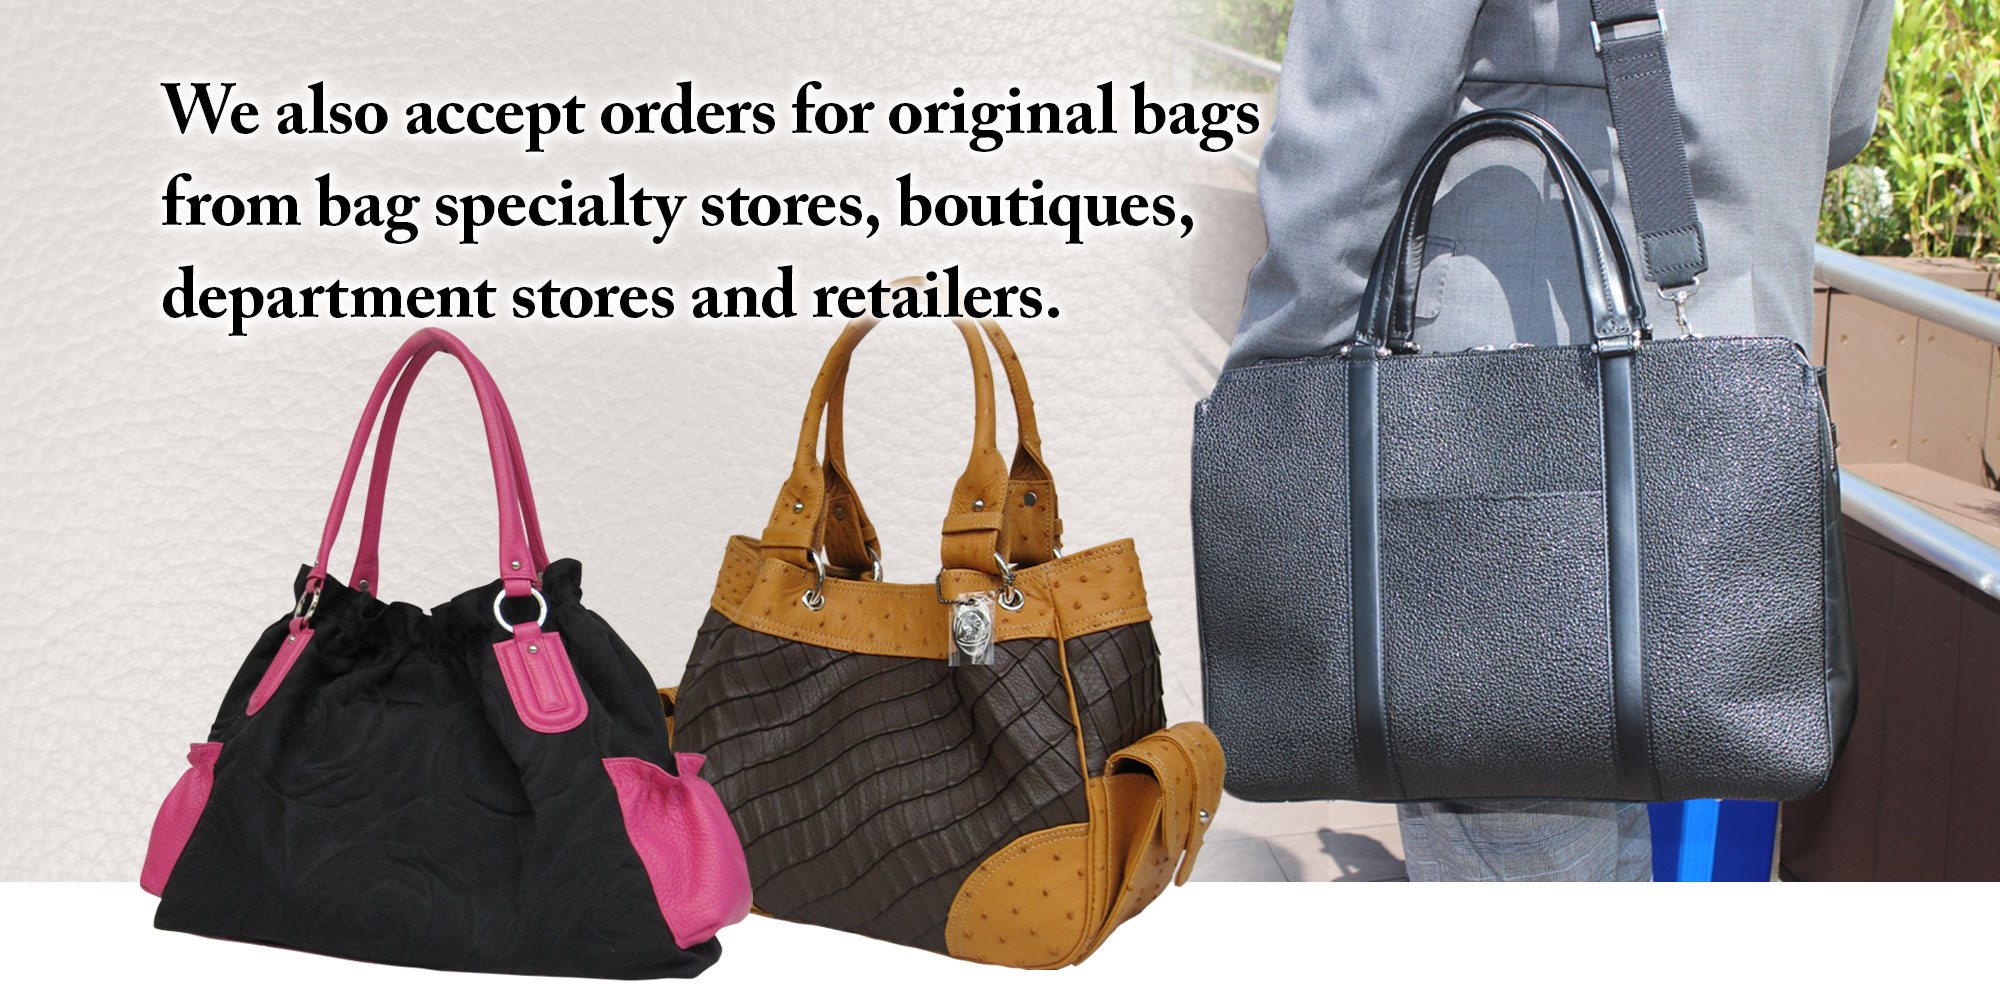 We also accept orders for original bags from bag specialty stores, boutiques, department stores and retailers.